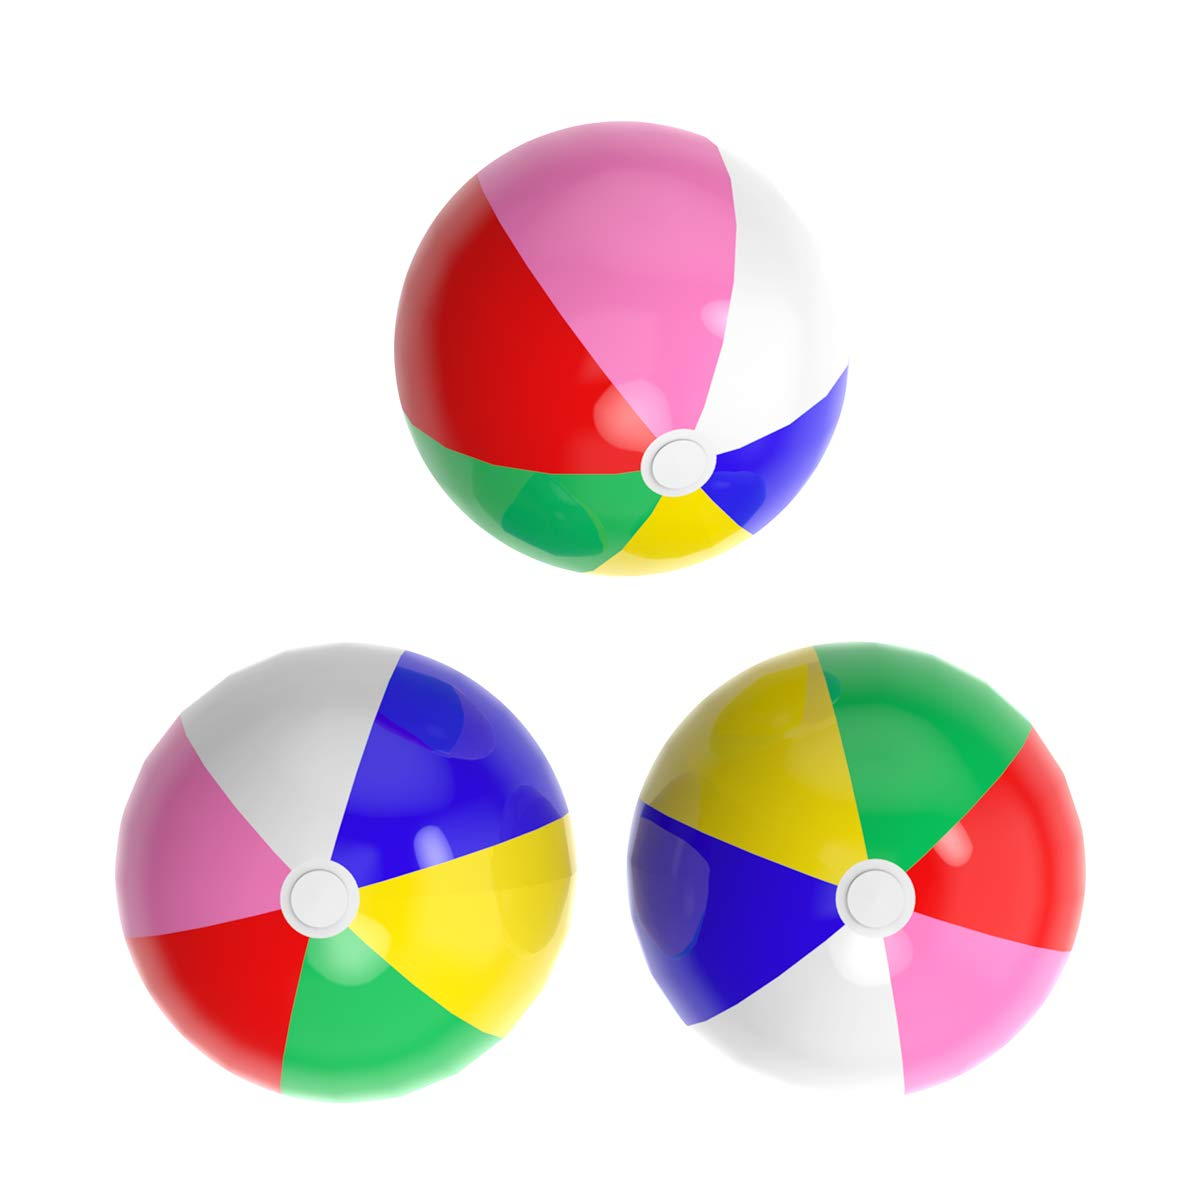 Acevery Inflatable Beach Balls, 24'' Rainbow Beach Balls- Beach Pool Party Toys (3 Pack)